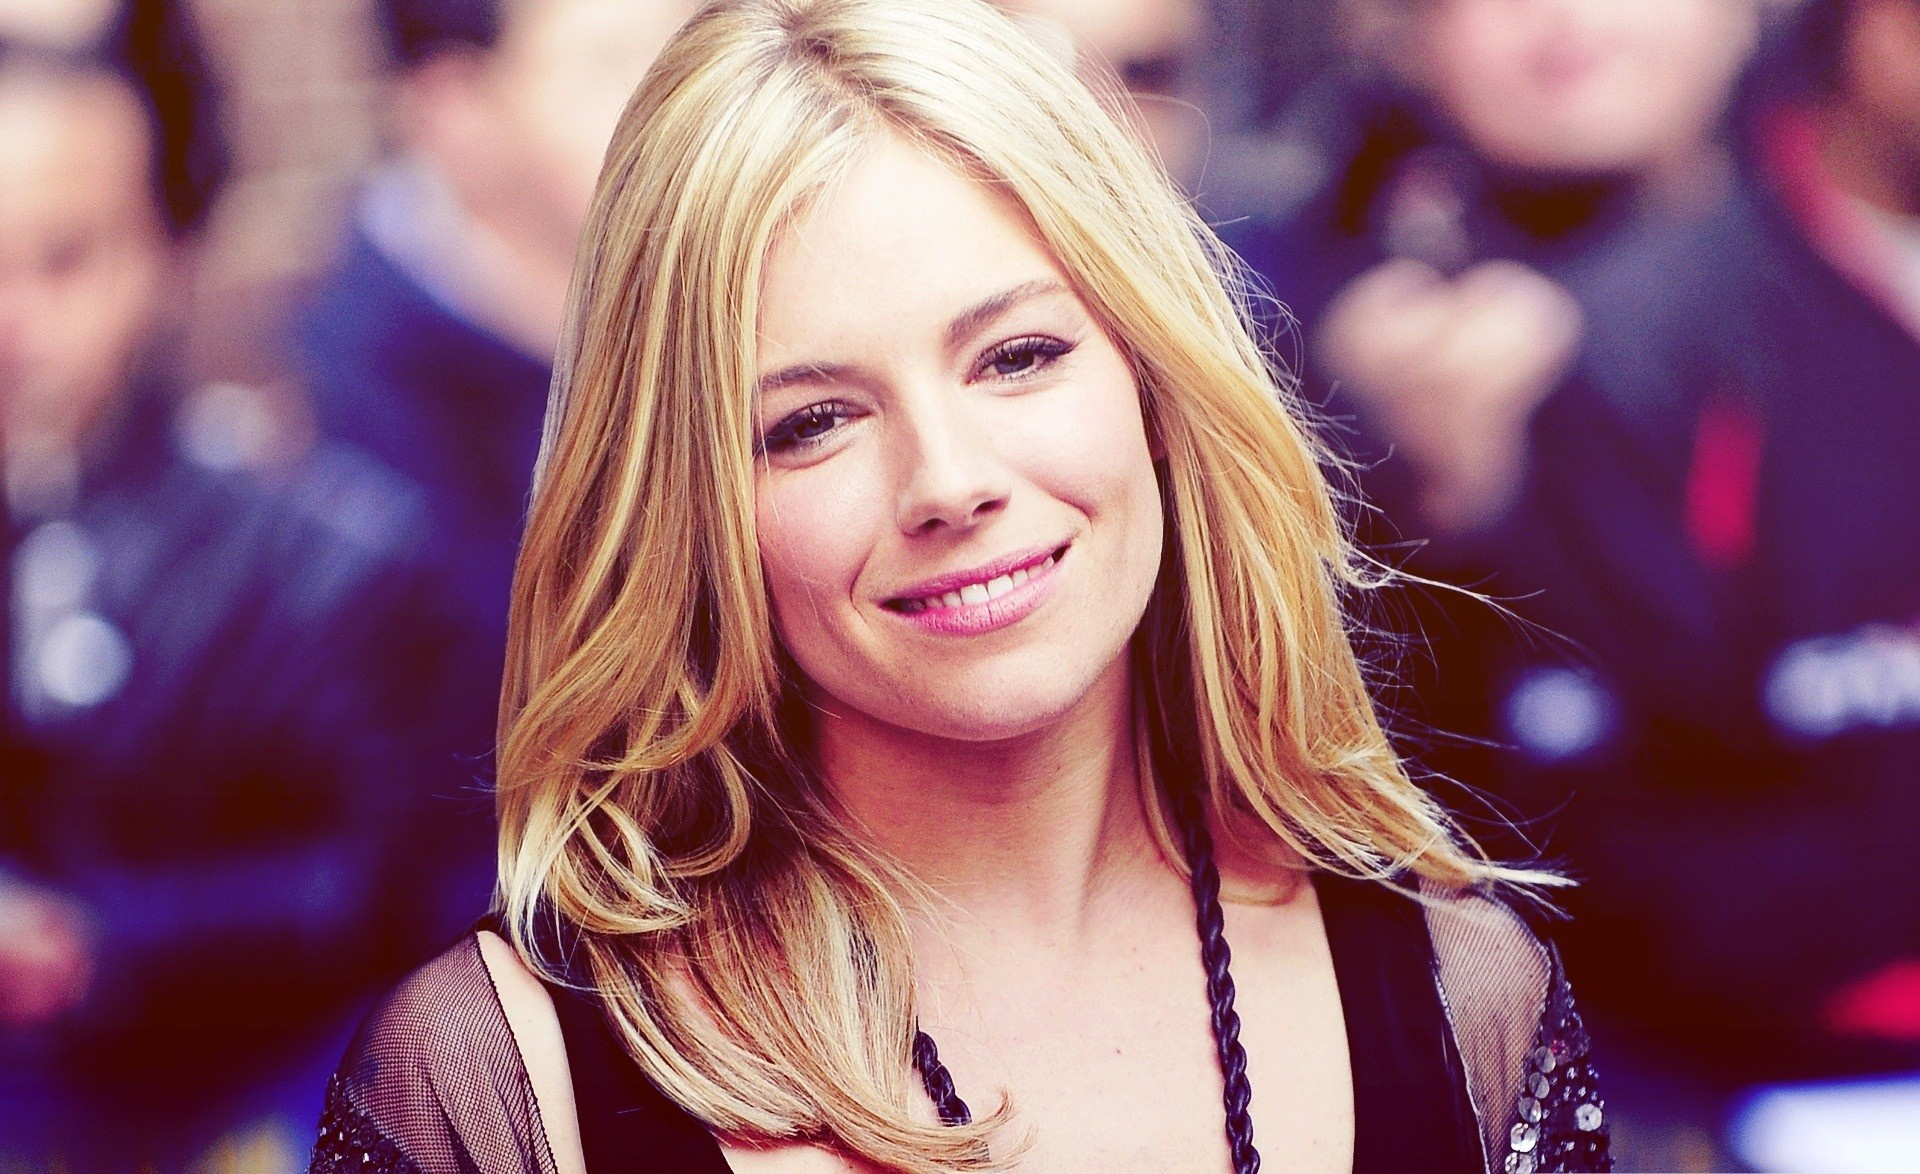 Sienna Miller Wallpapers High Resolution And Quality Download